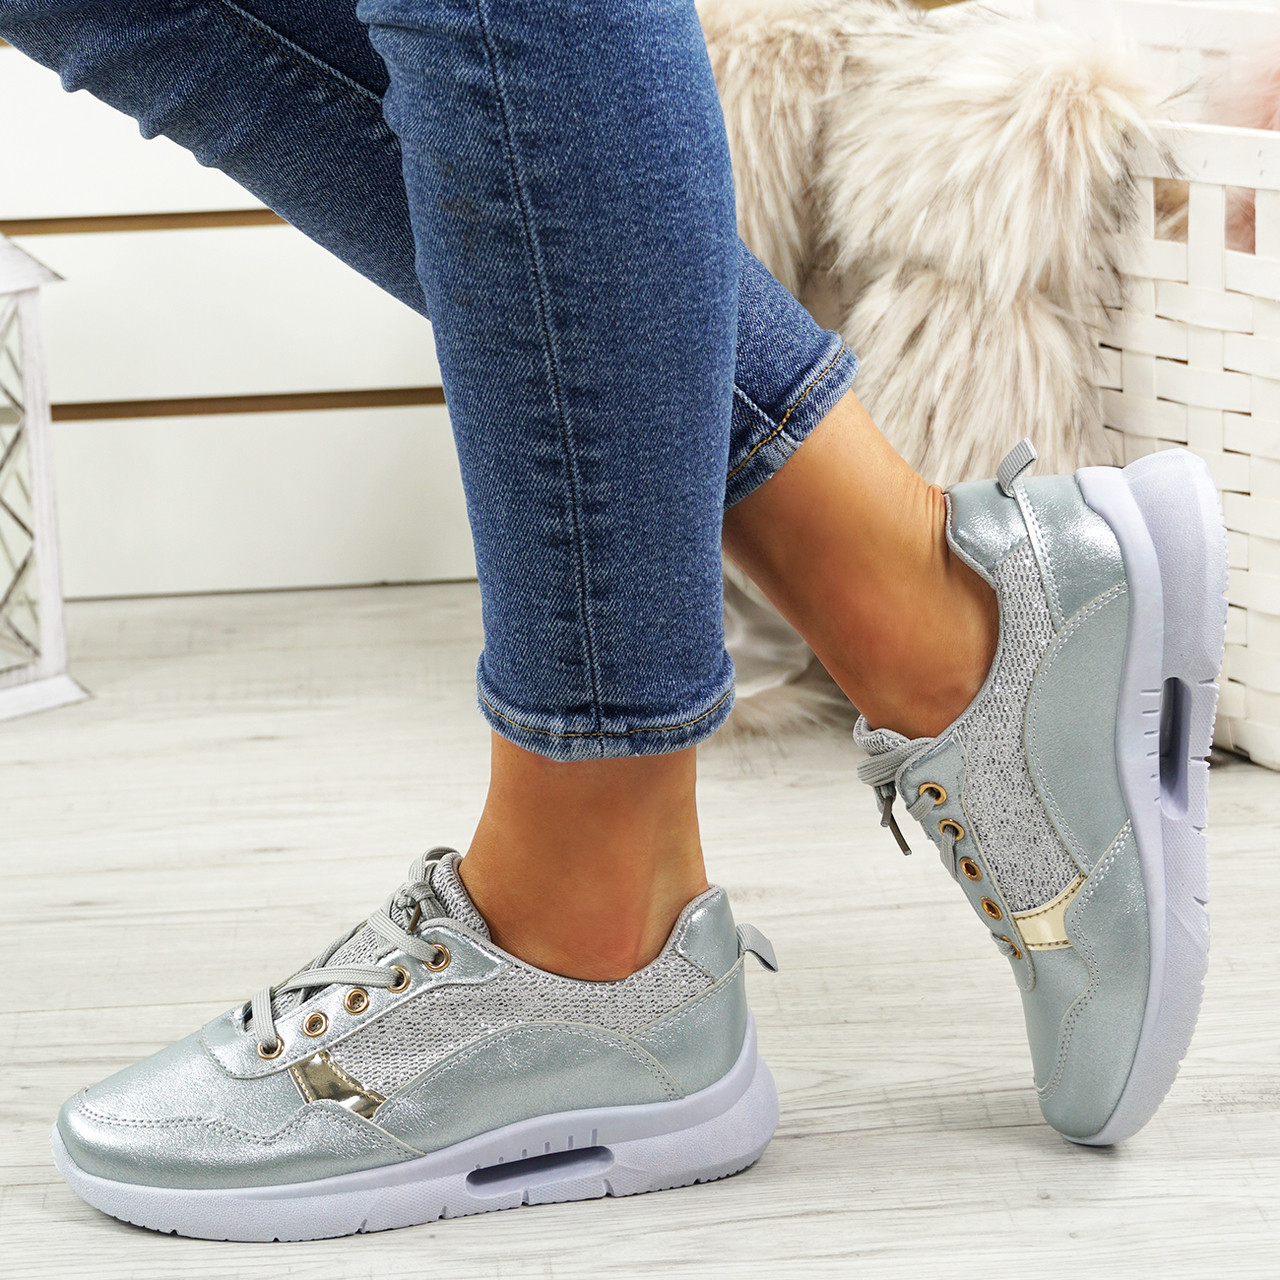 a7cba90b98d Womens Ladies Glitter Trainers Sneakers Fashion Plimsolls Lace Up Shoes Size